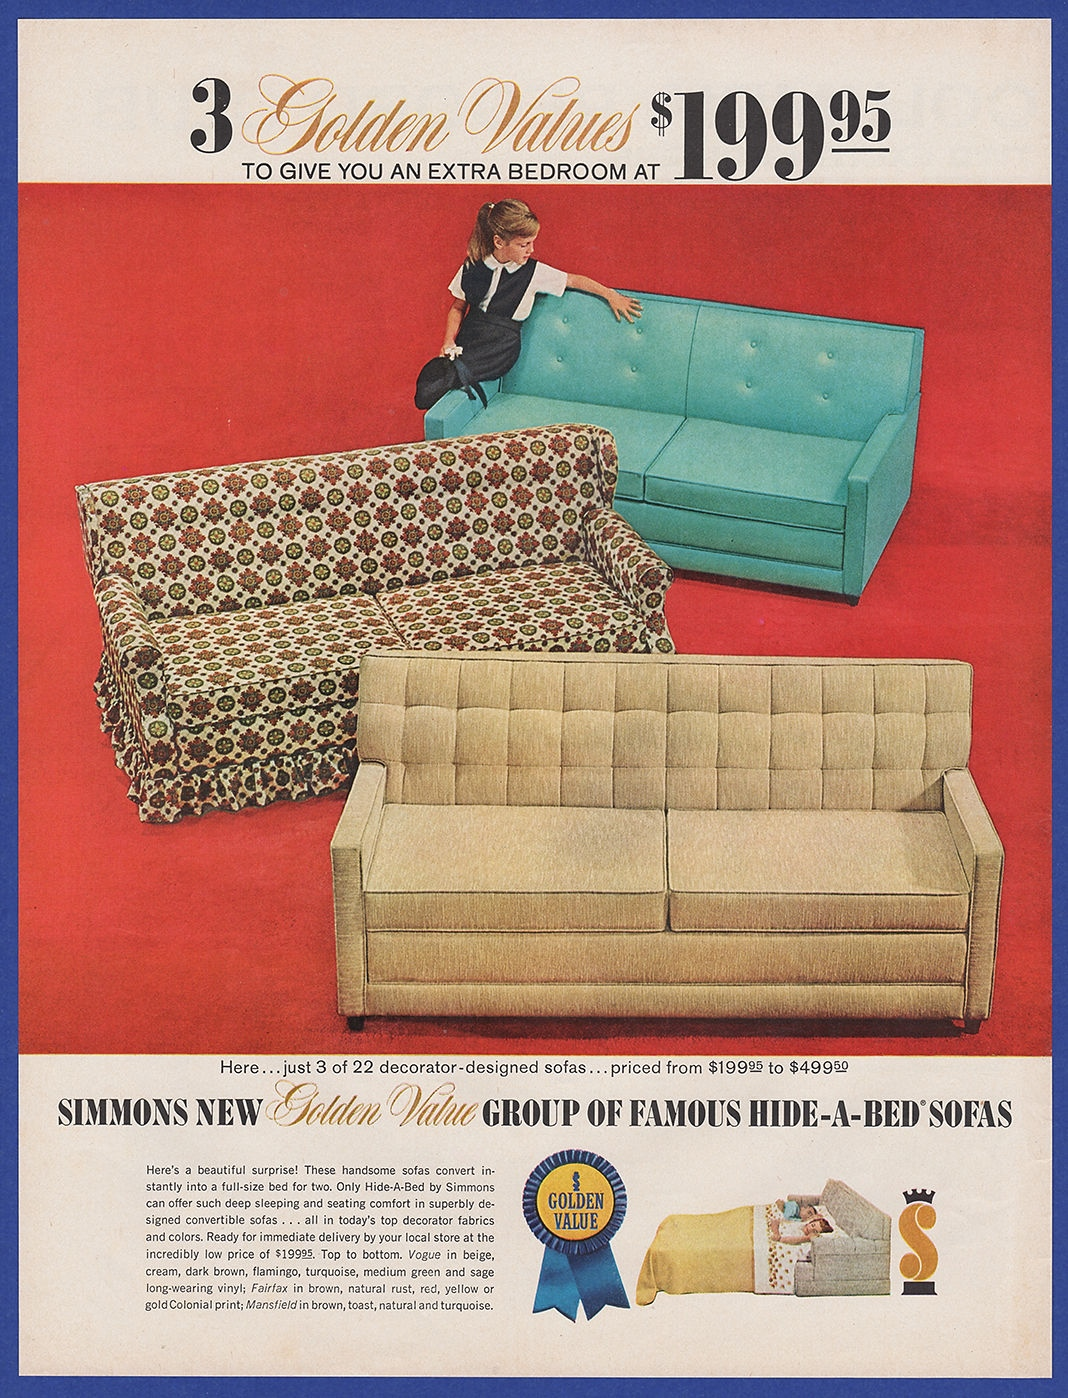 Miraculous Details About Vintage 1963 Simmons Golden Value Hide A Bed Sofa Furniture Decor Print Ad 60S Creativecarmelina Interior Chair Design Creativecarmelinacom